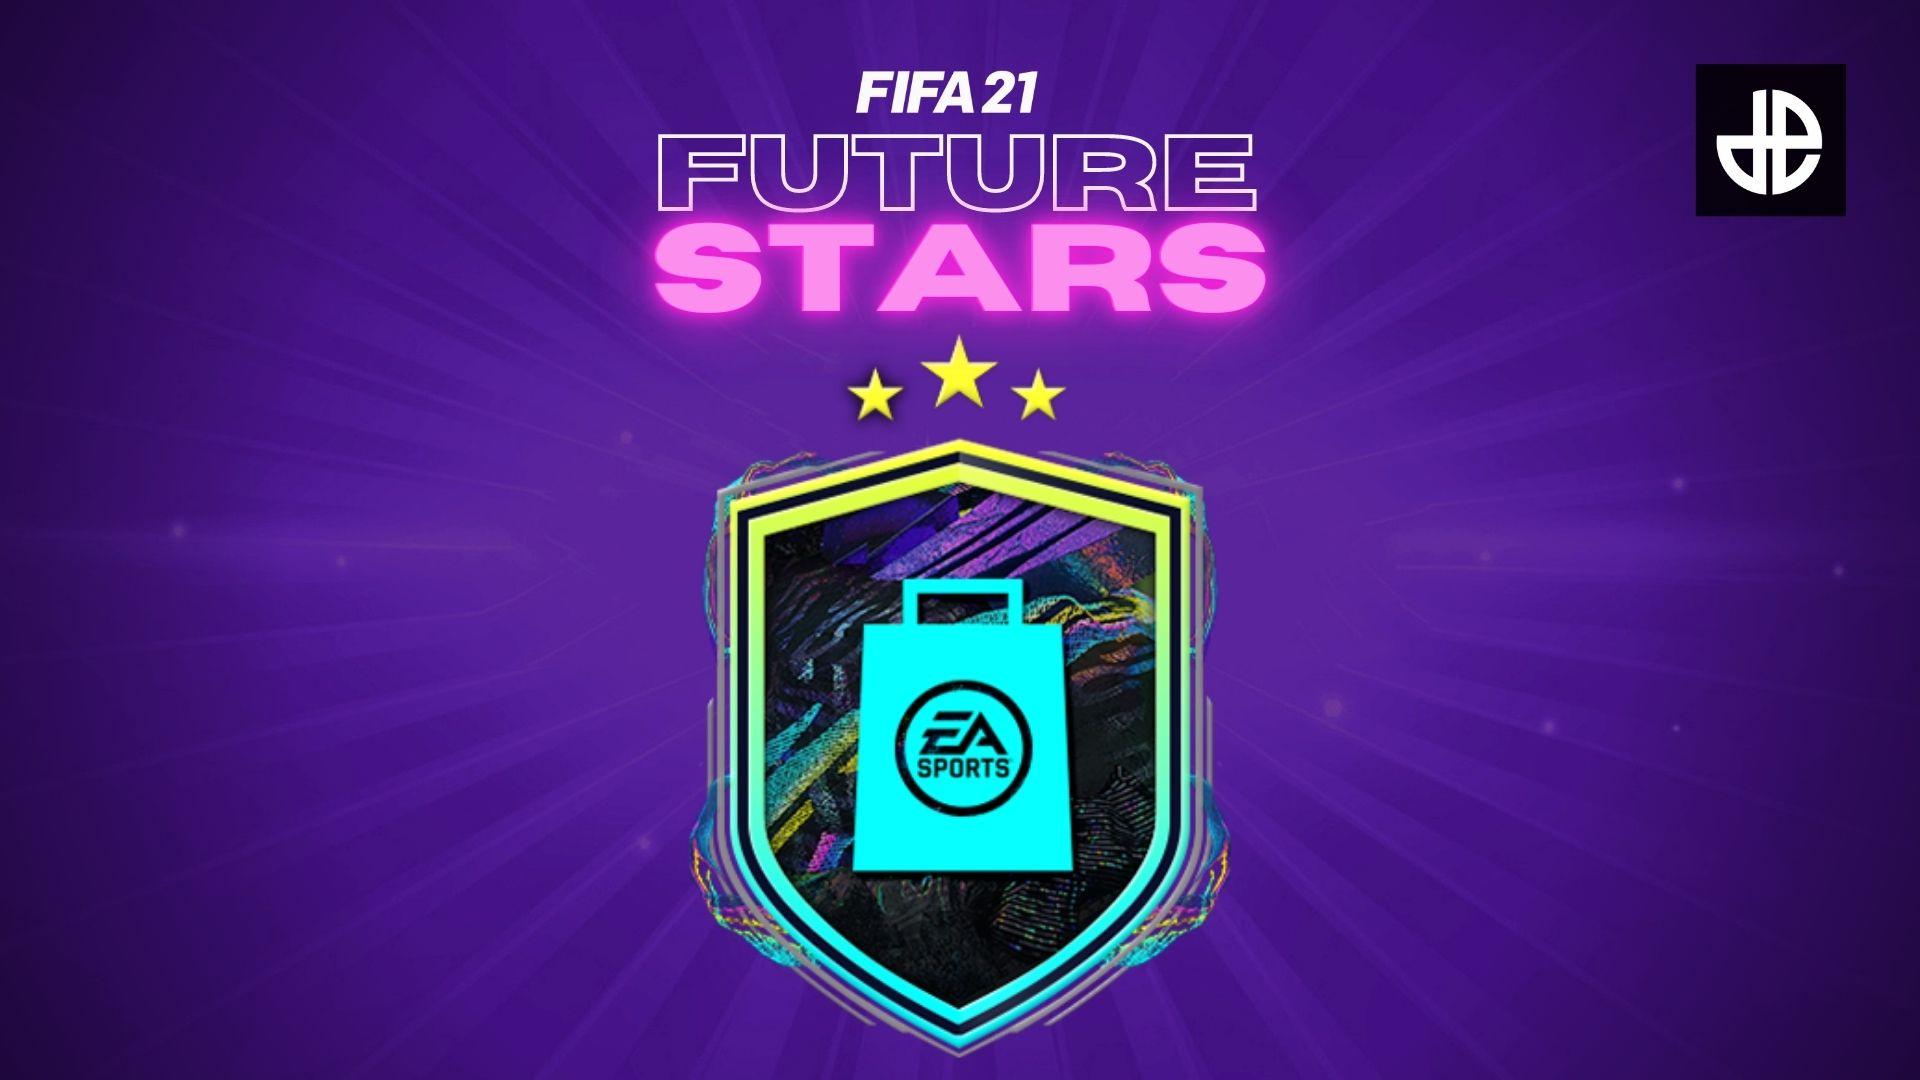 FIFA 21 Fuutre Stars Party Bag SBC promo